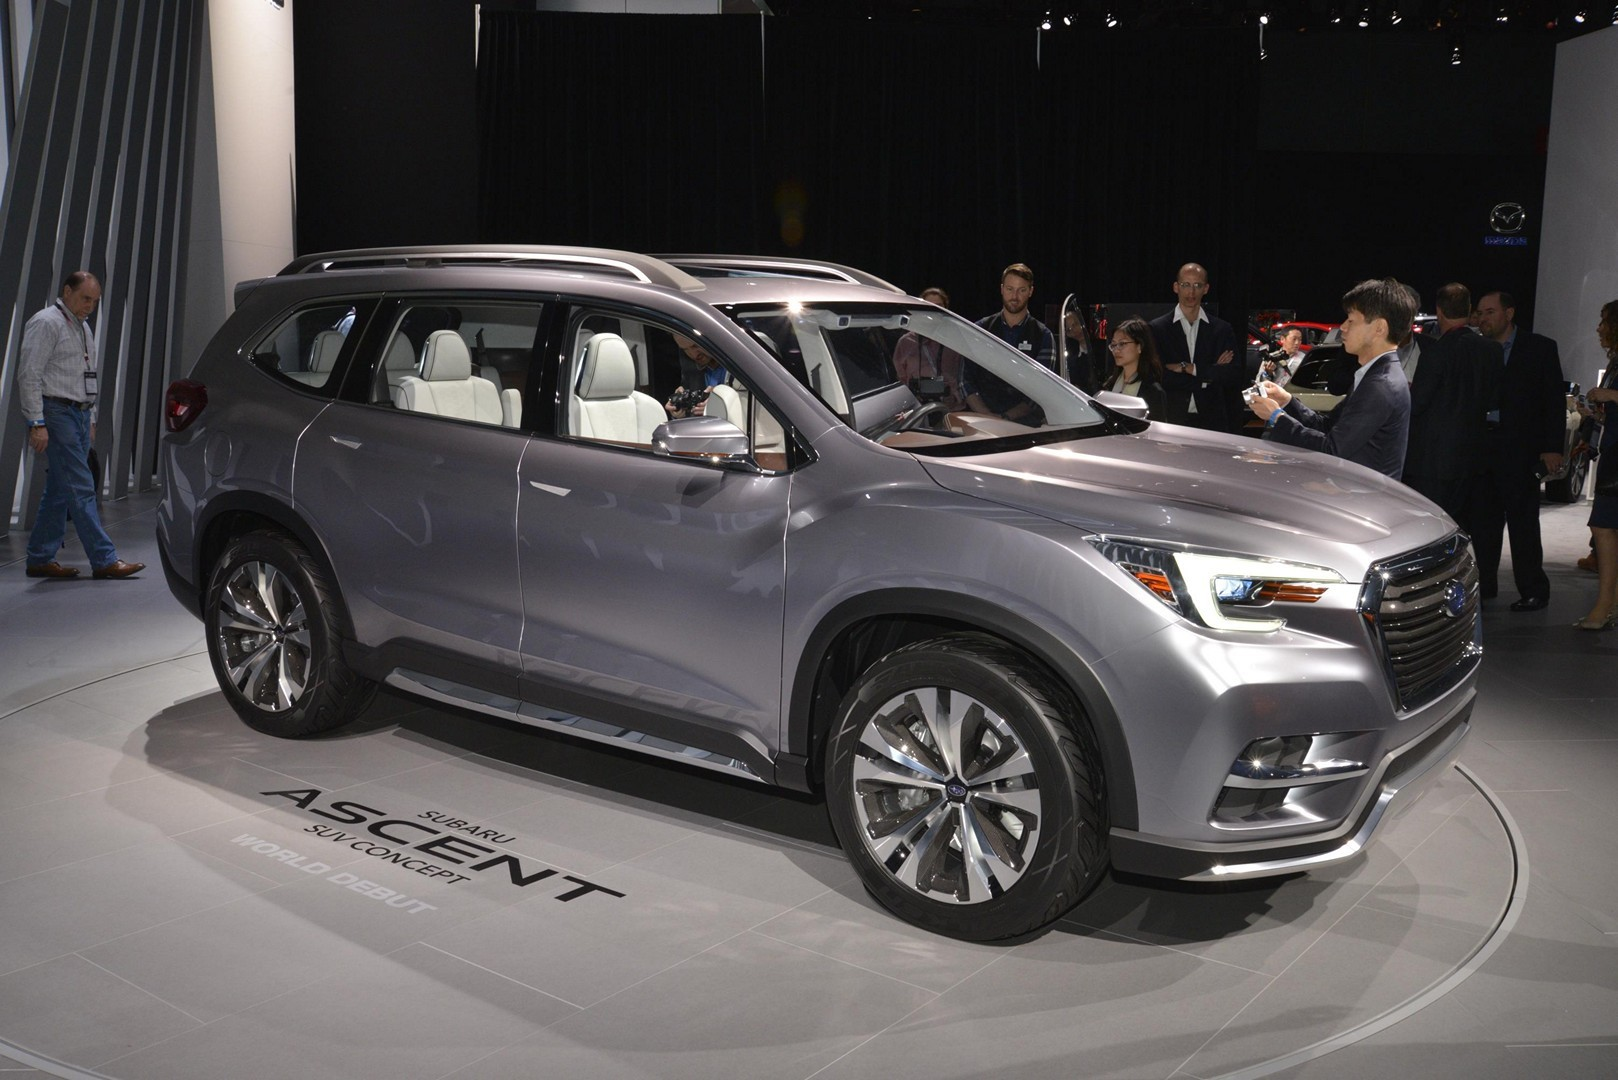 subaru ascent concept debuts with stunning interior in new york autoevolution. Black Bedroom Furniture Sets. Home Design Ideas